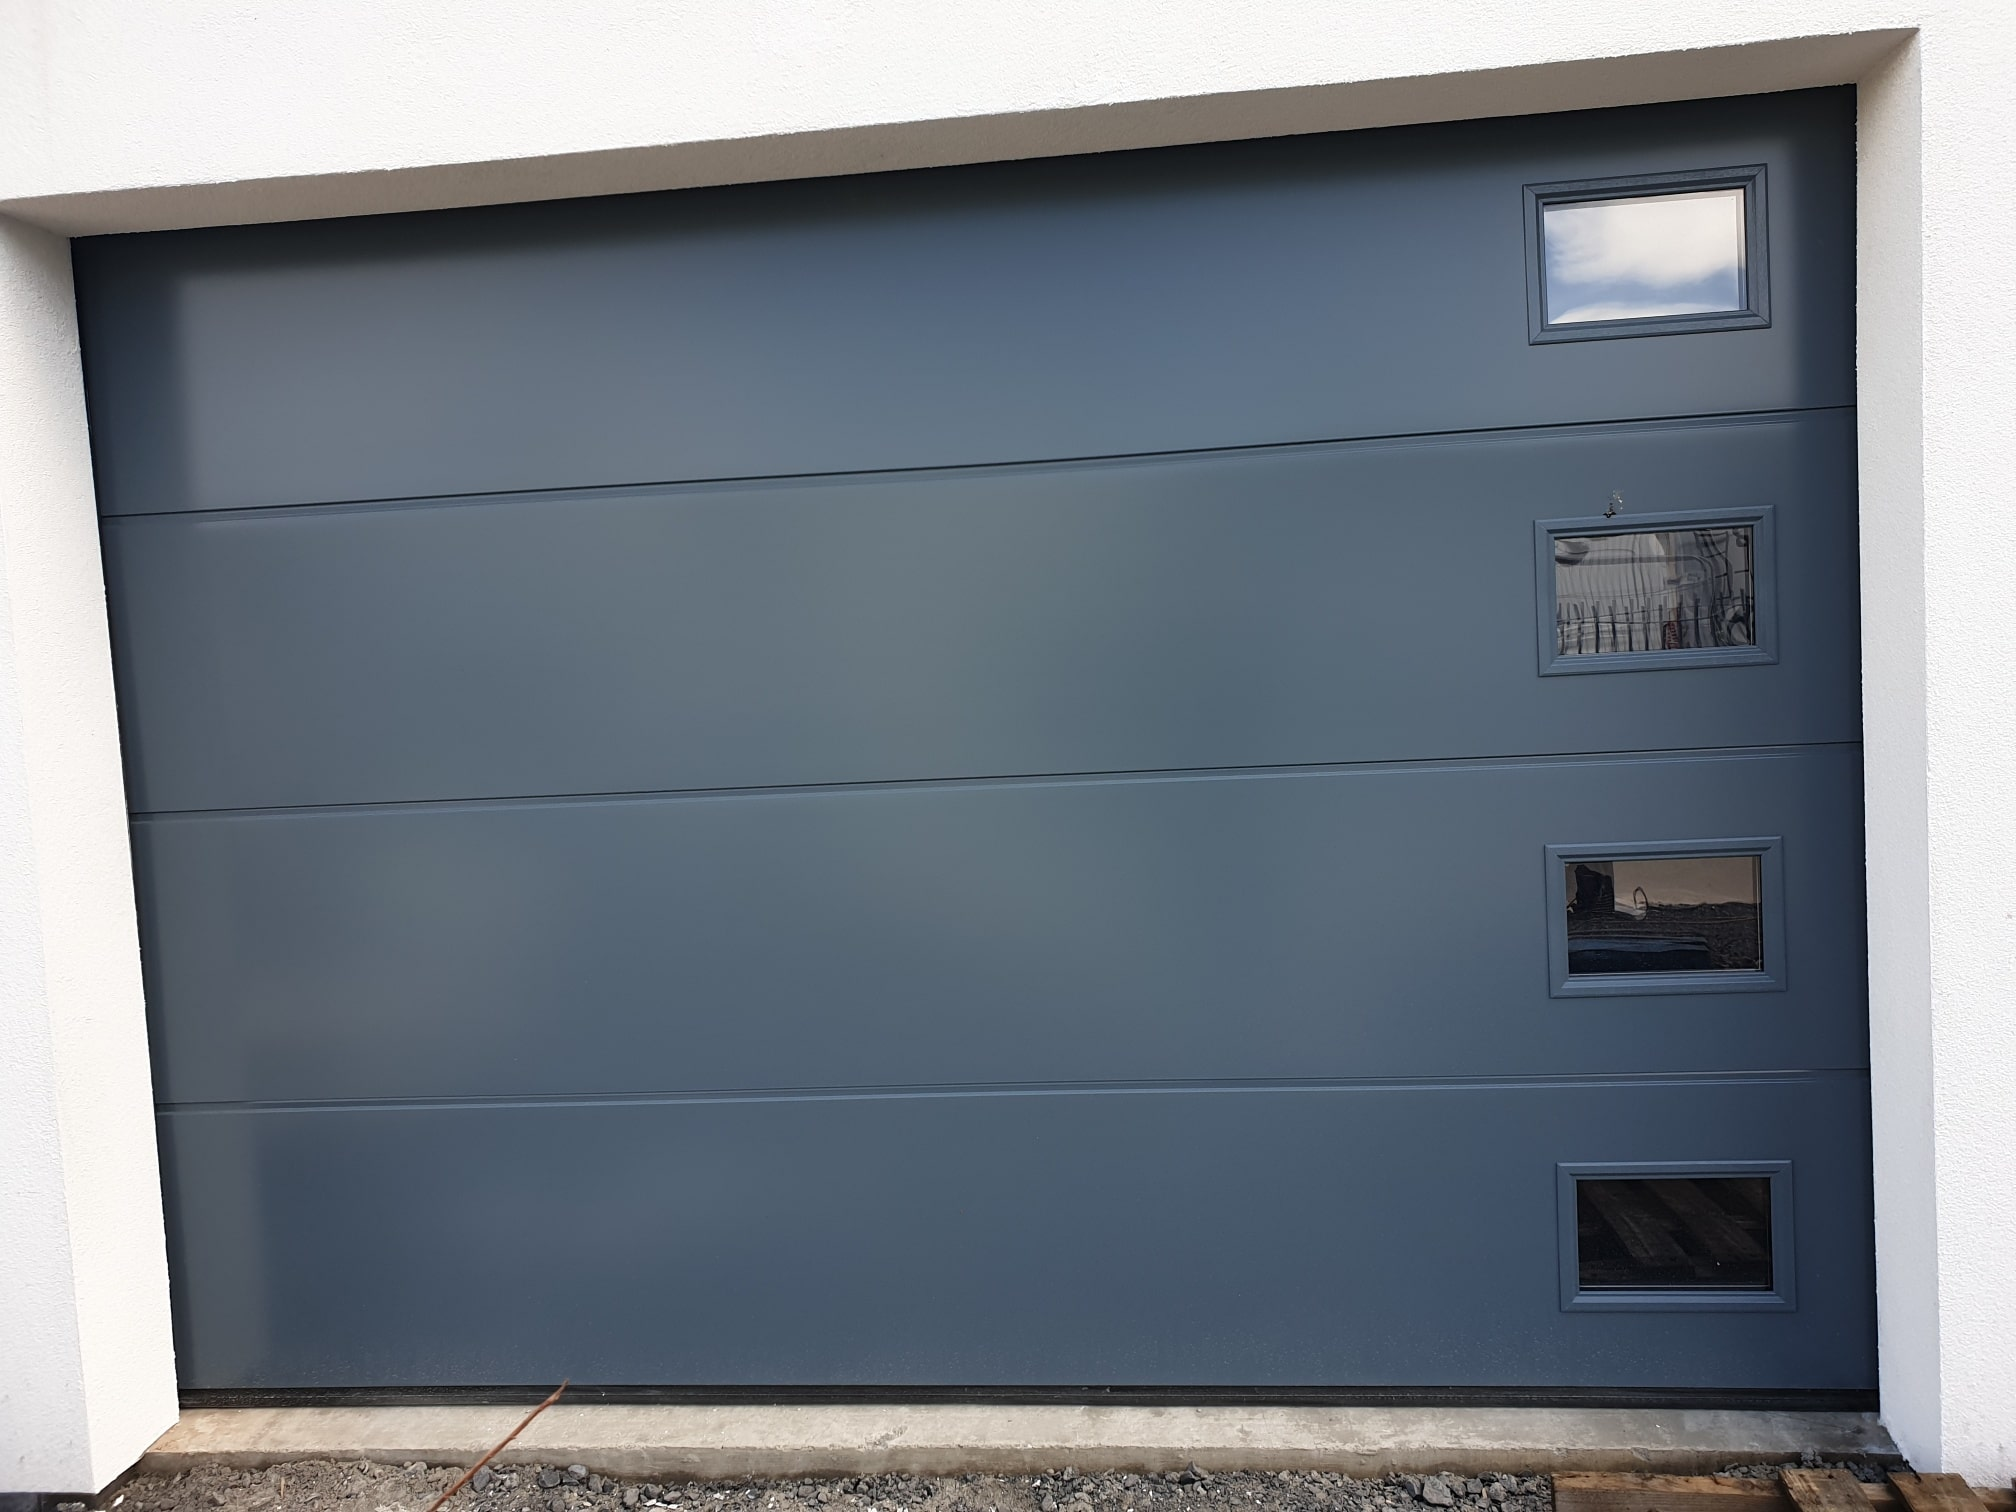 Insulated sectional garage doors 3